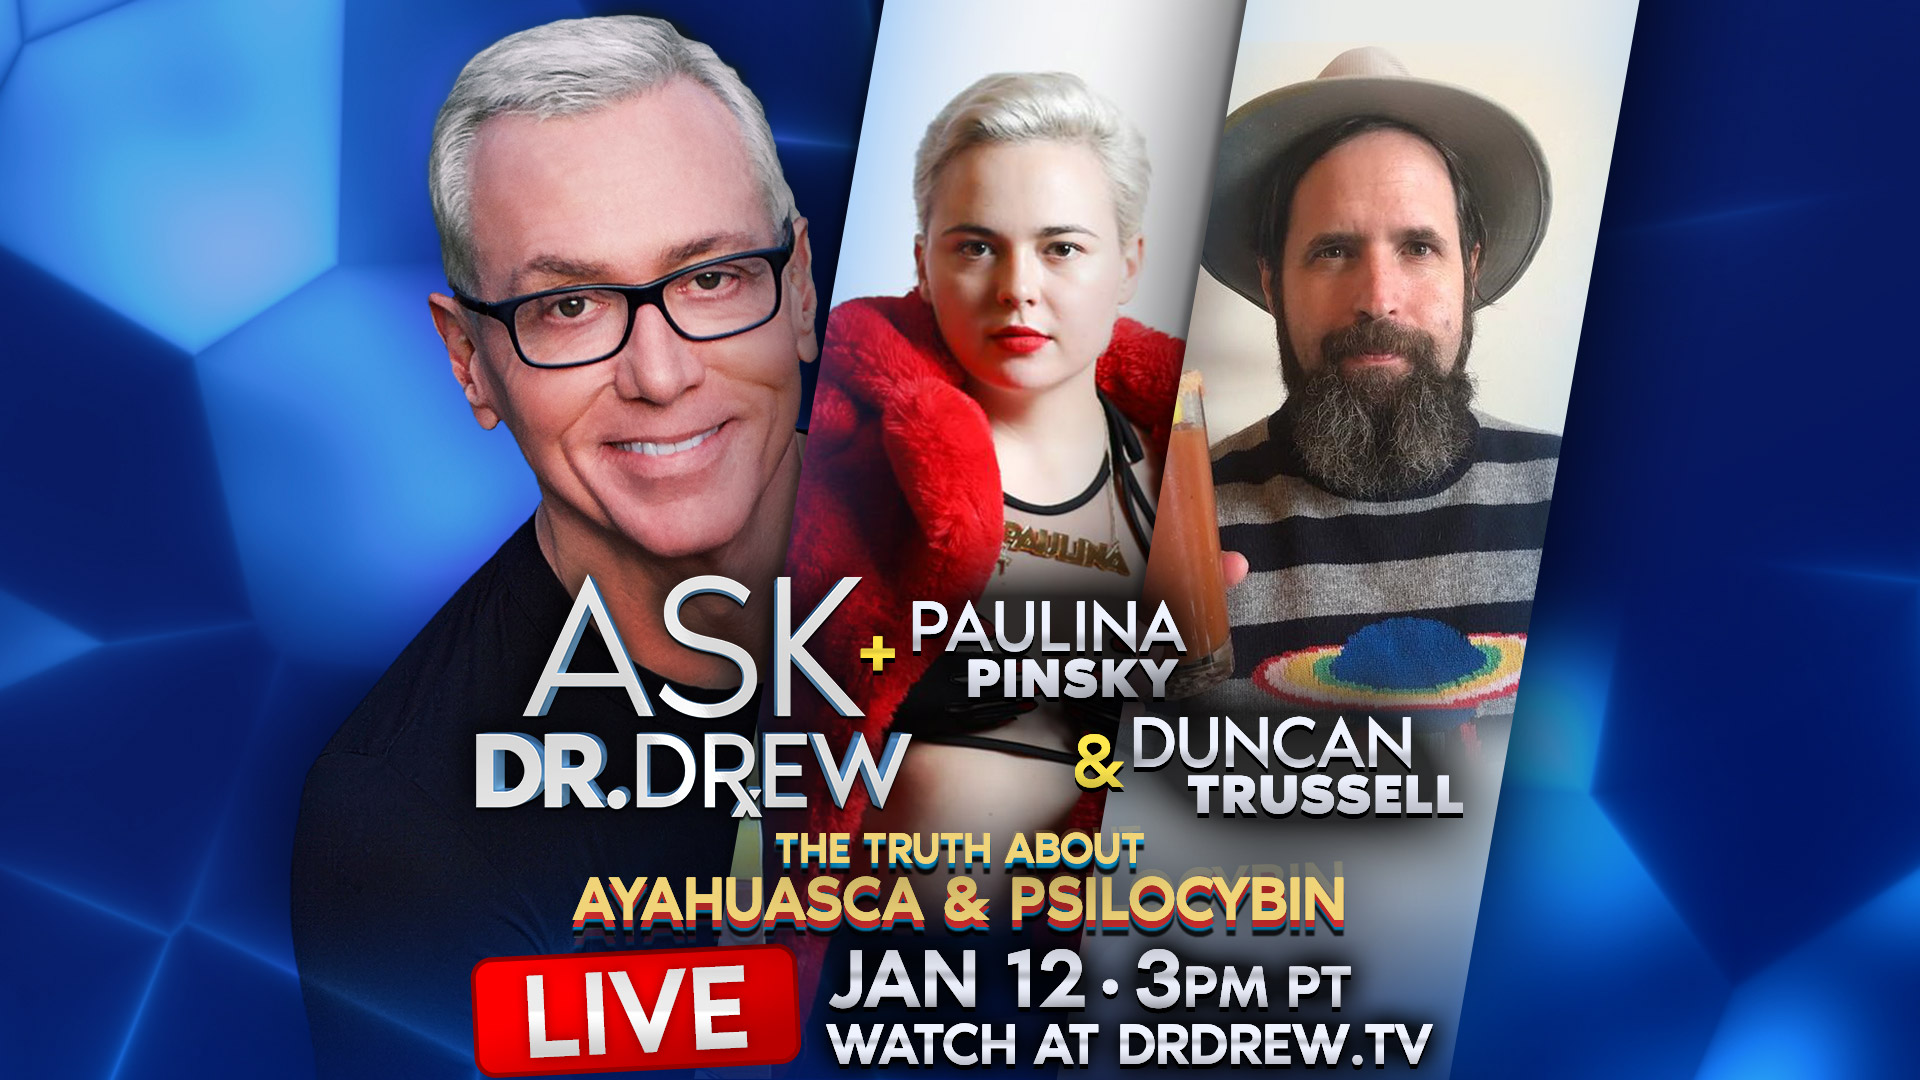 Jan 12: Paulina Pinsky and Duncan Trussell on Ask Dr. Drew LIVE